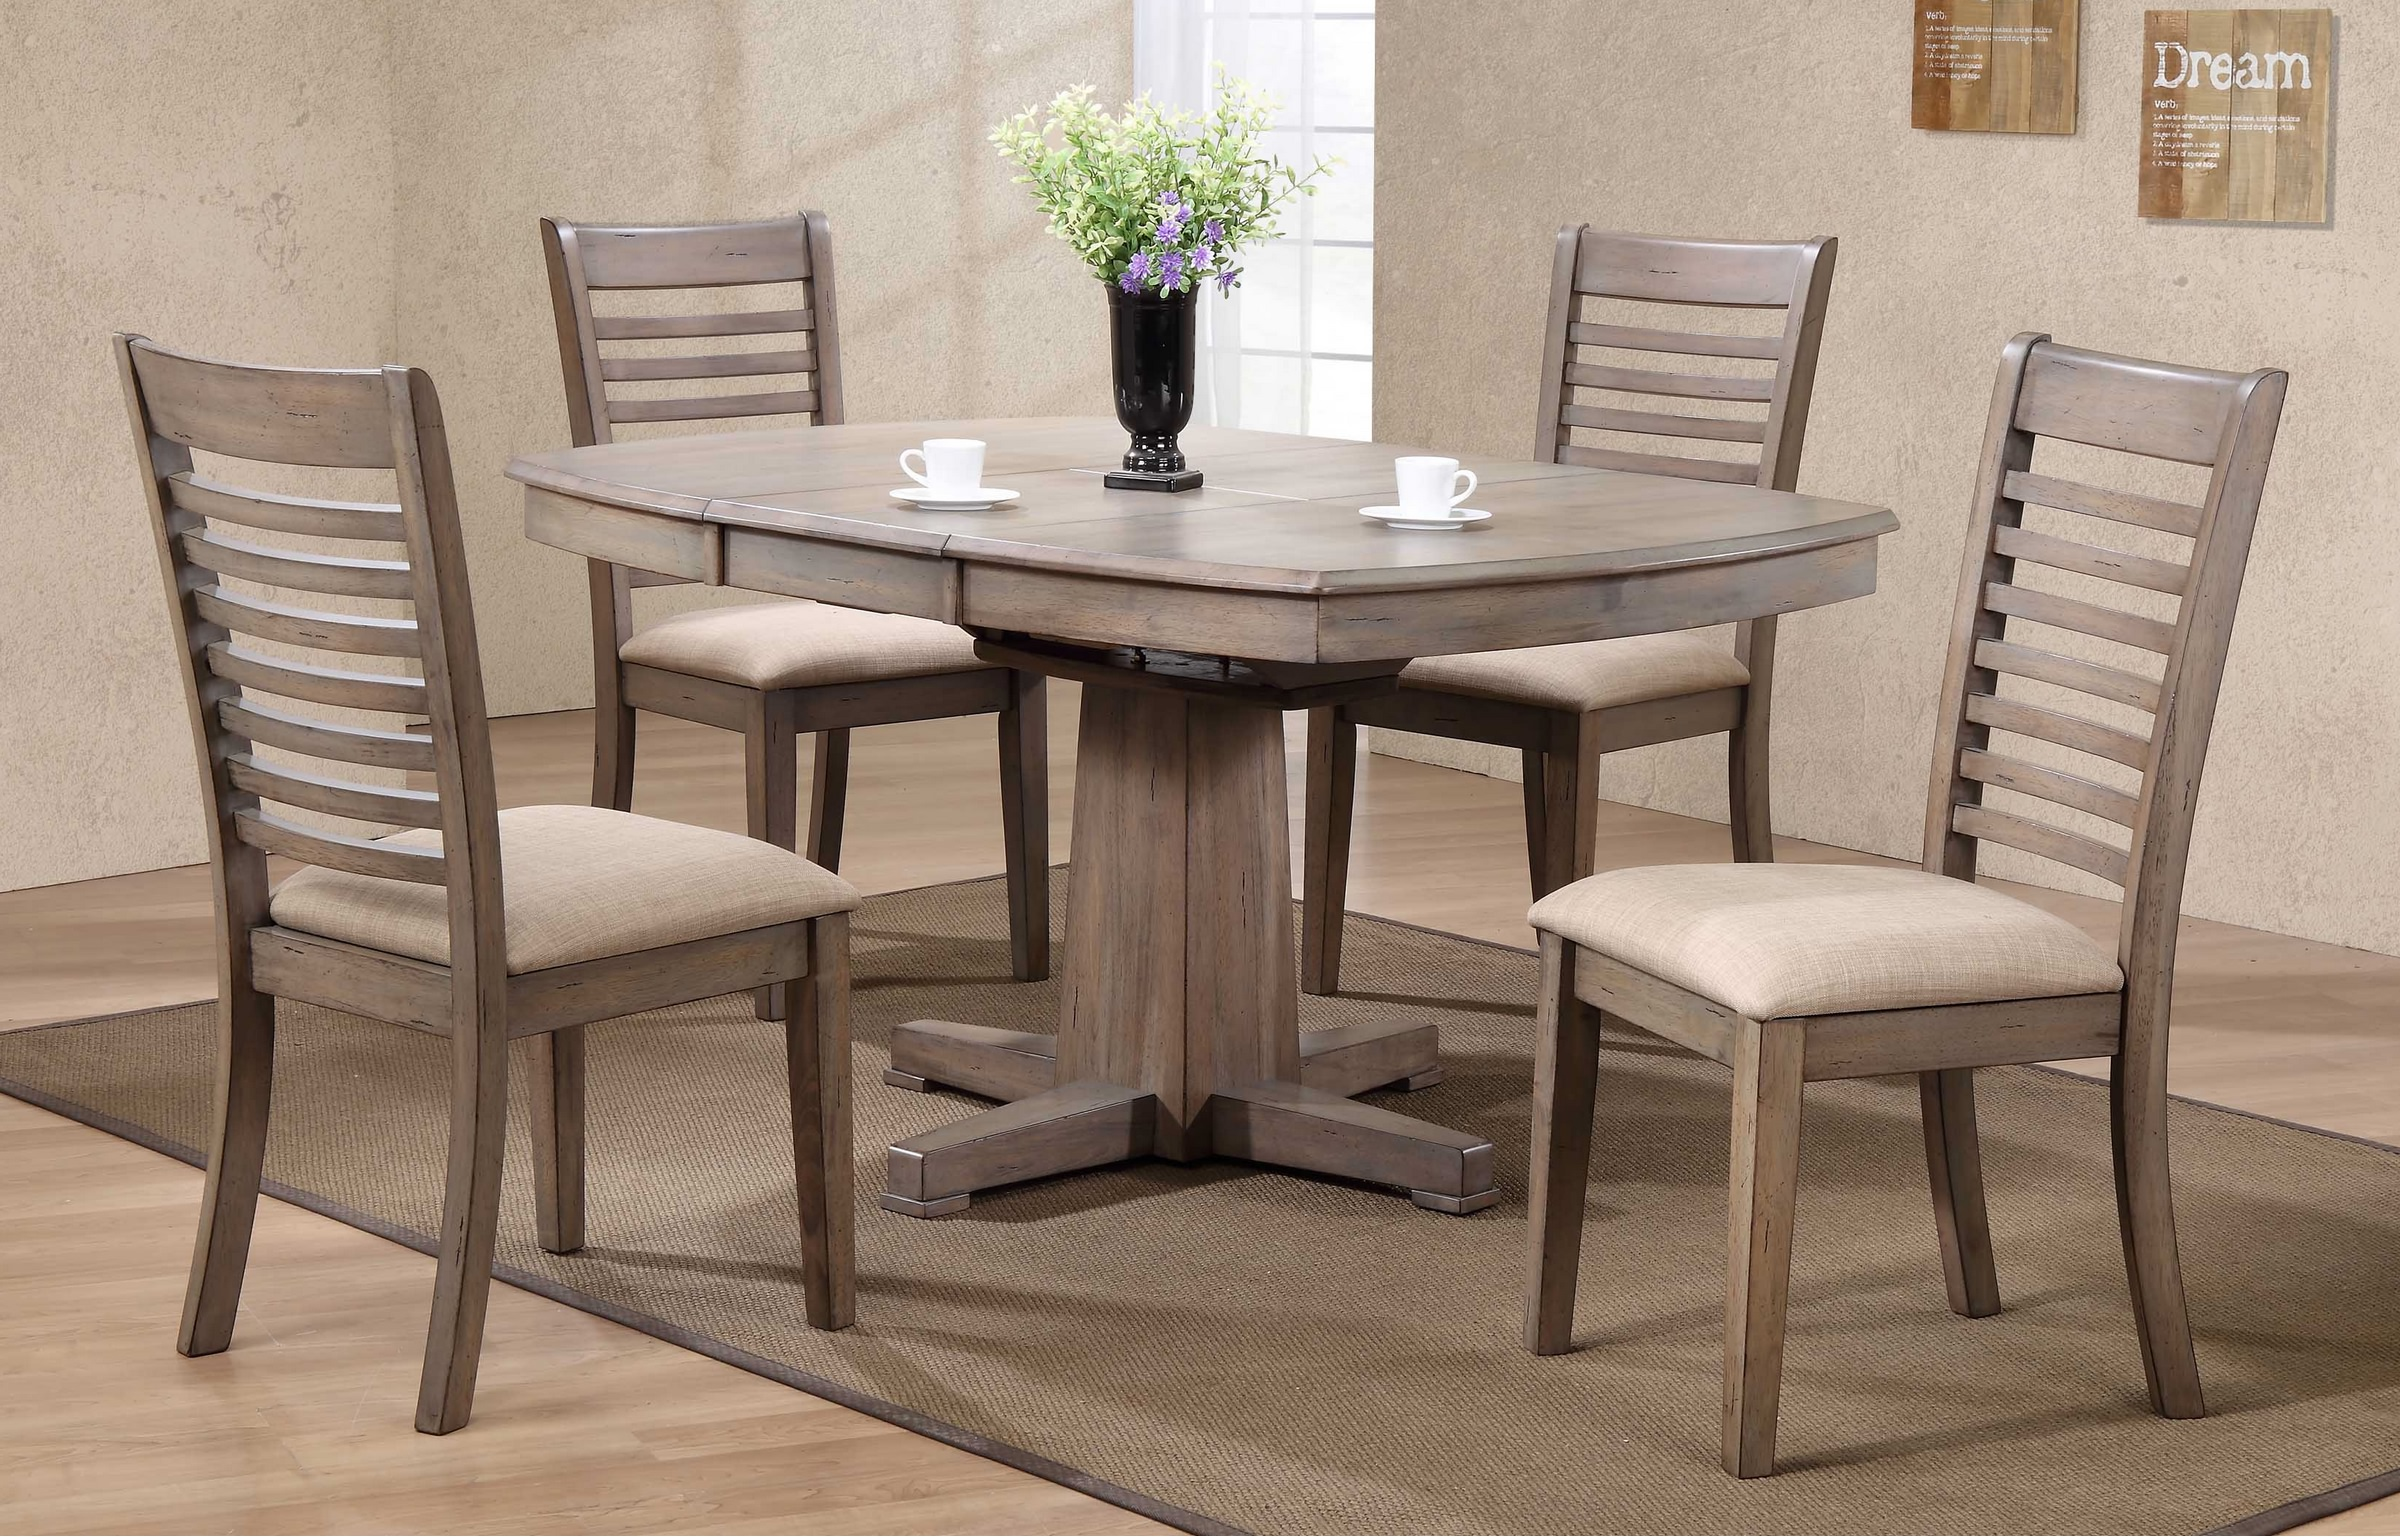 Ventura 57 Quot Pedestal Table Amp 4 Chairs In Grey Wash Finish